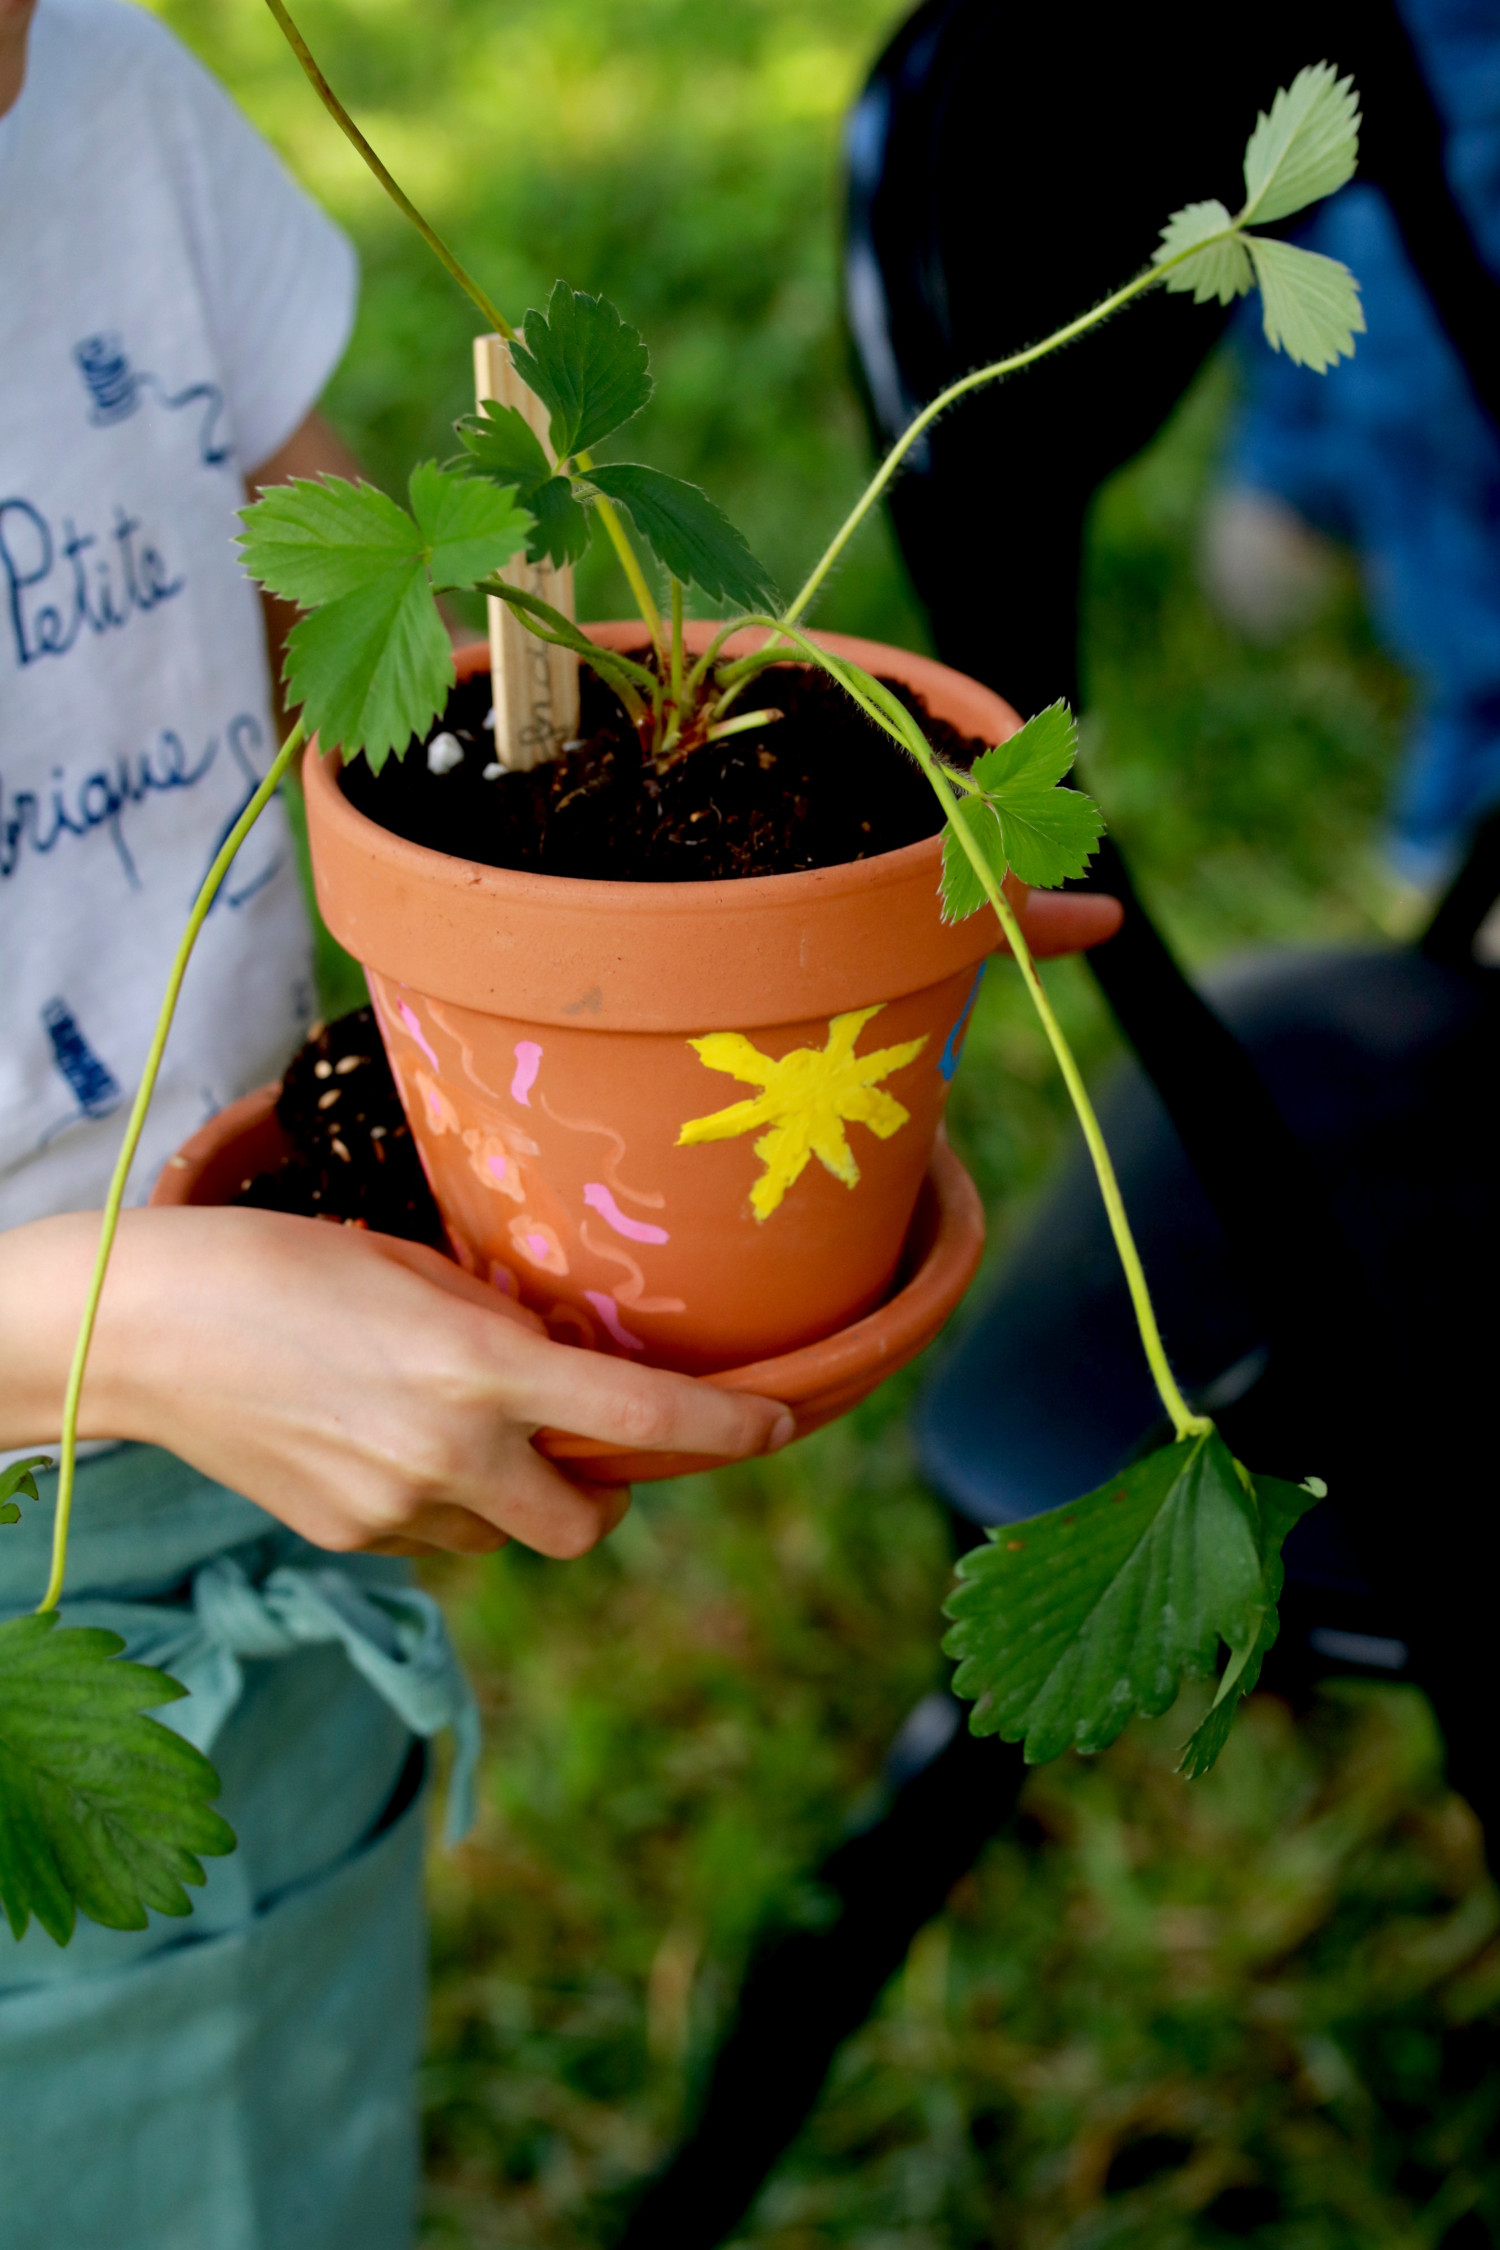 atelier jardinage family days, kids days, décoration de pots et plantation